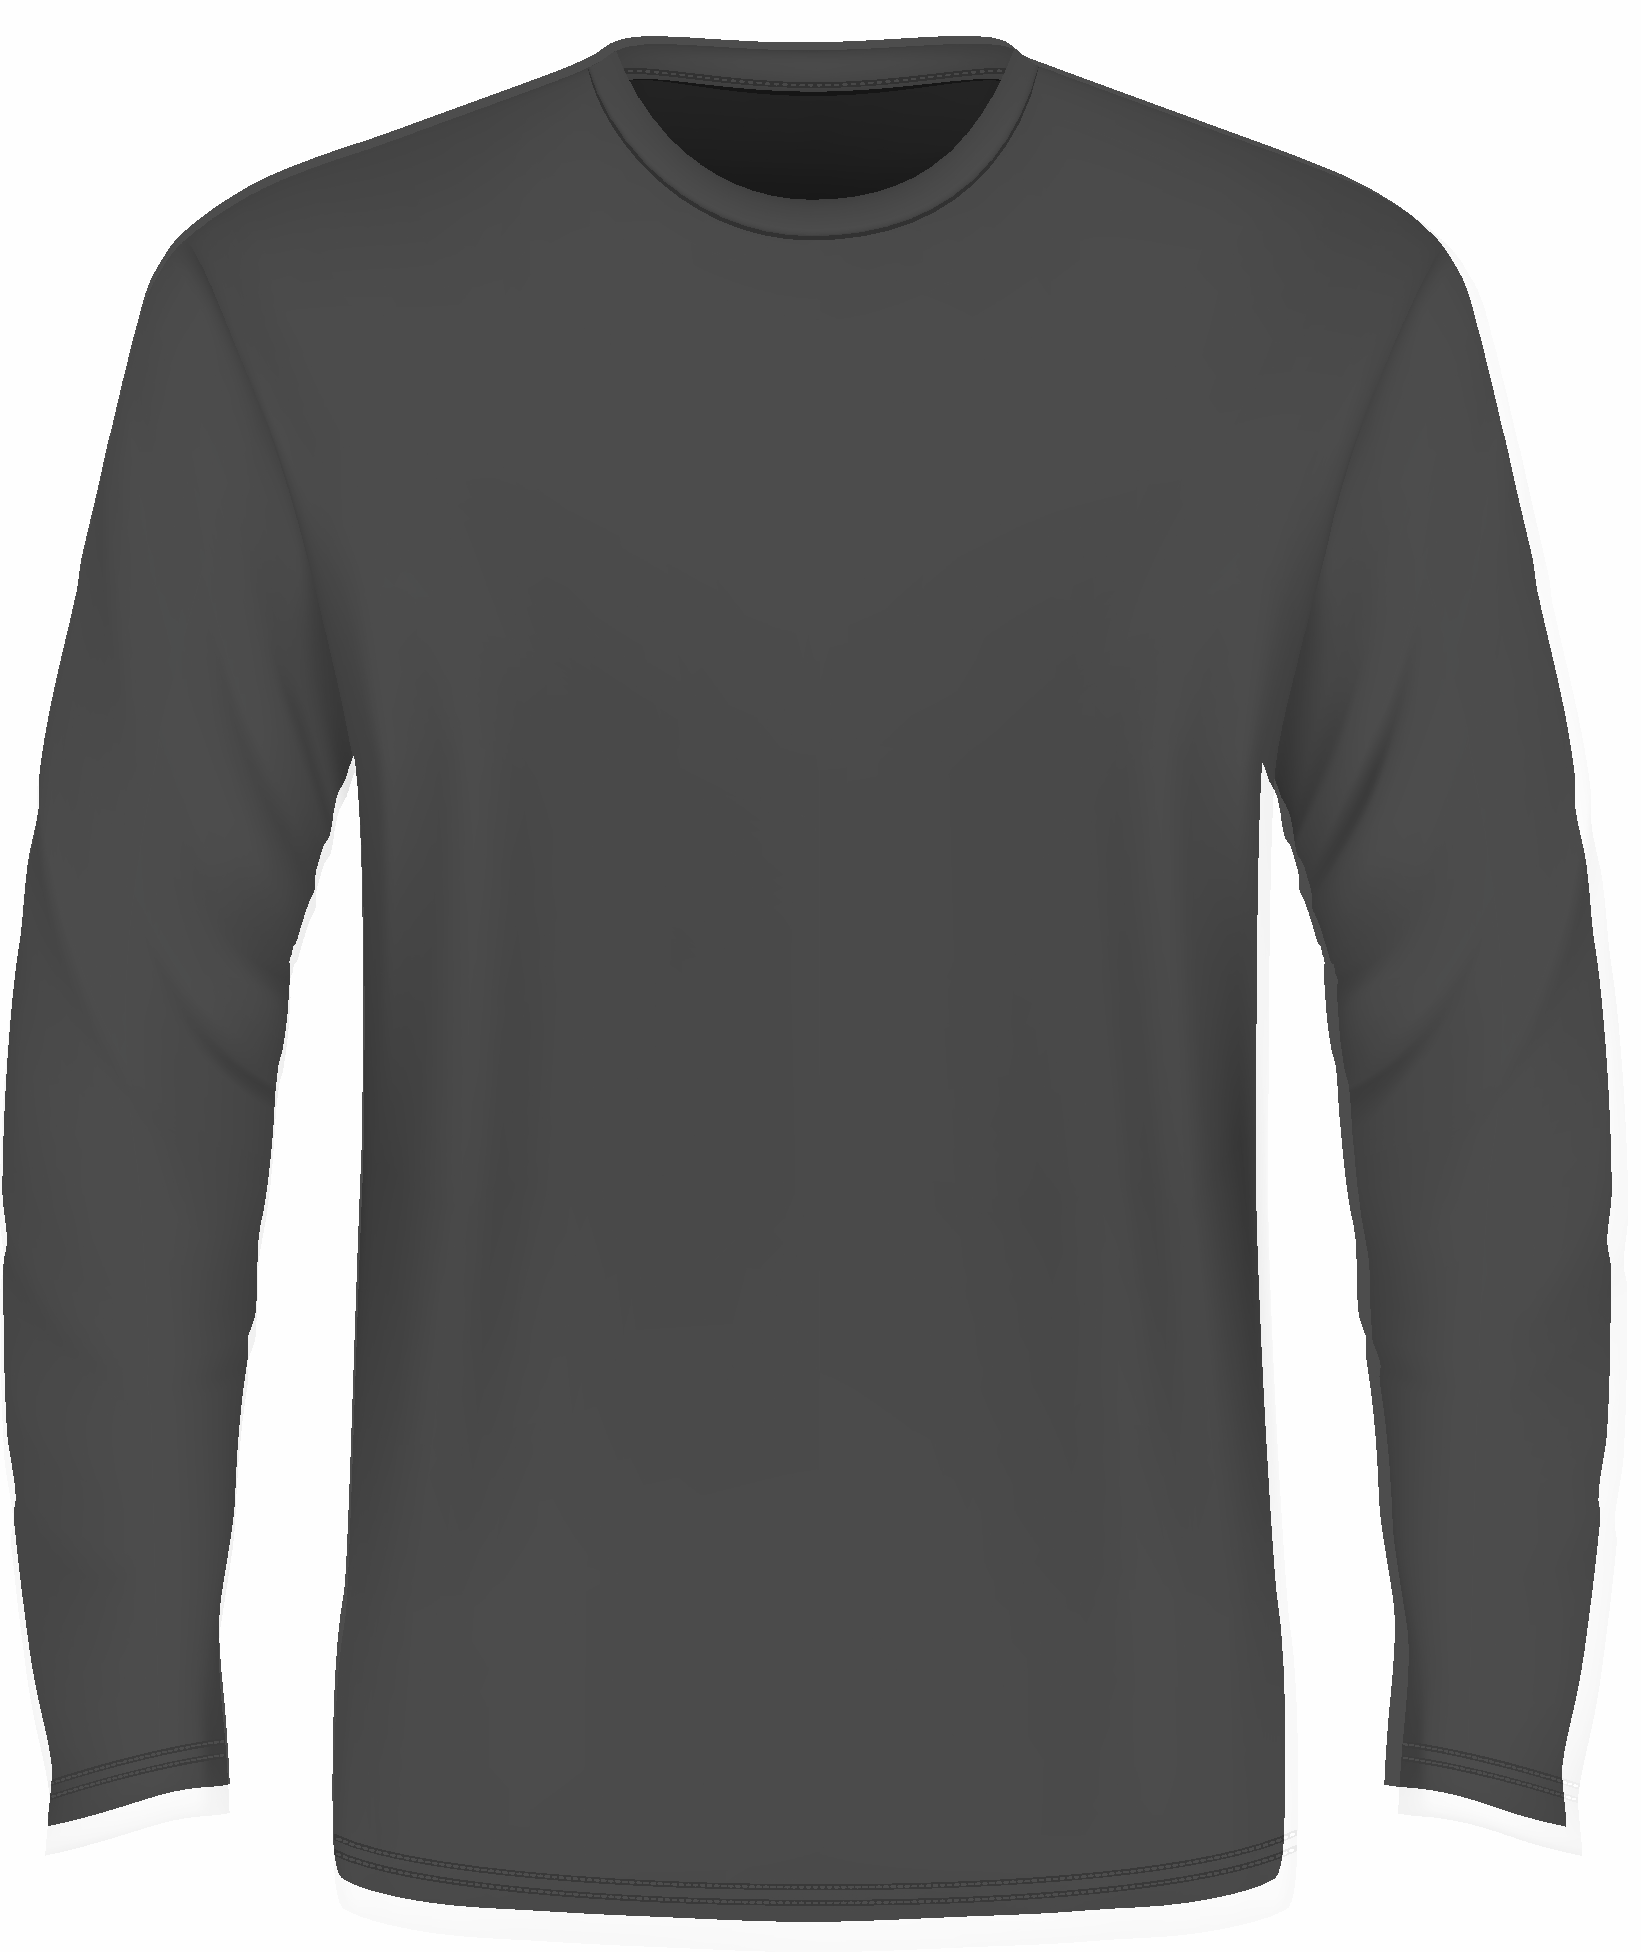 Long Sleeve T Shirt Template Png